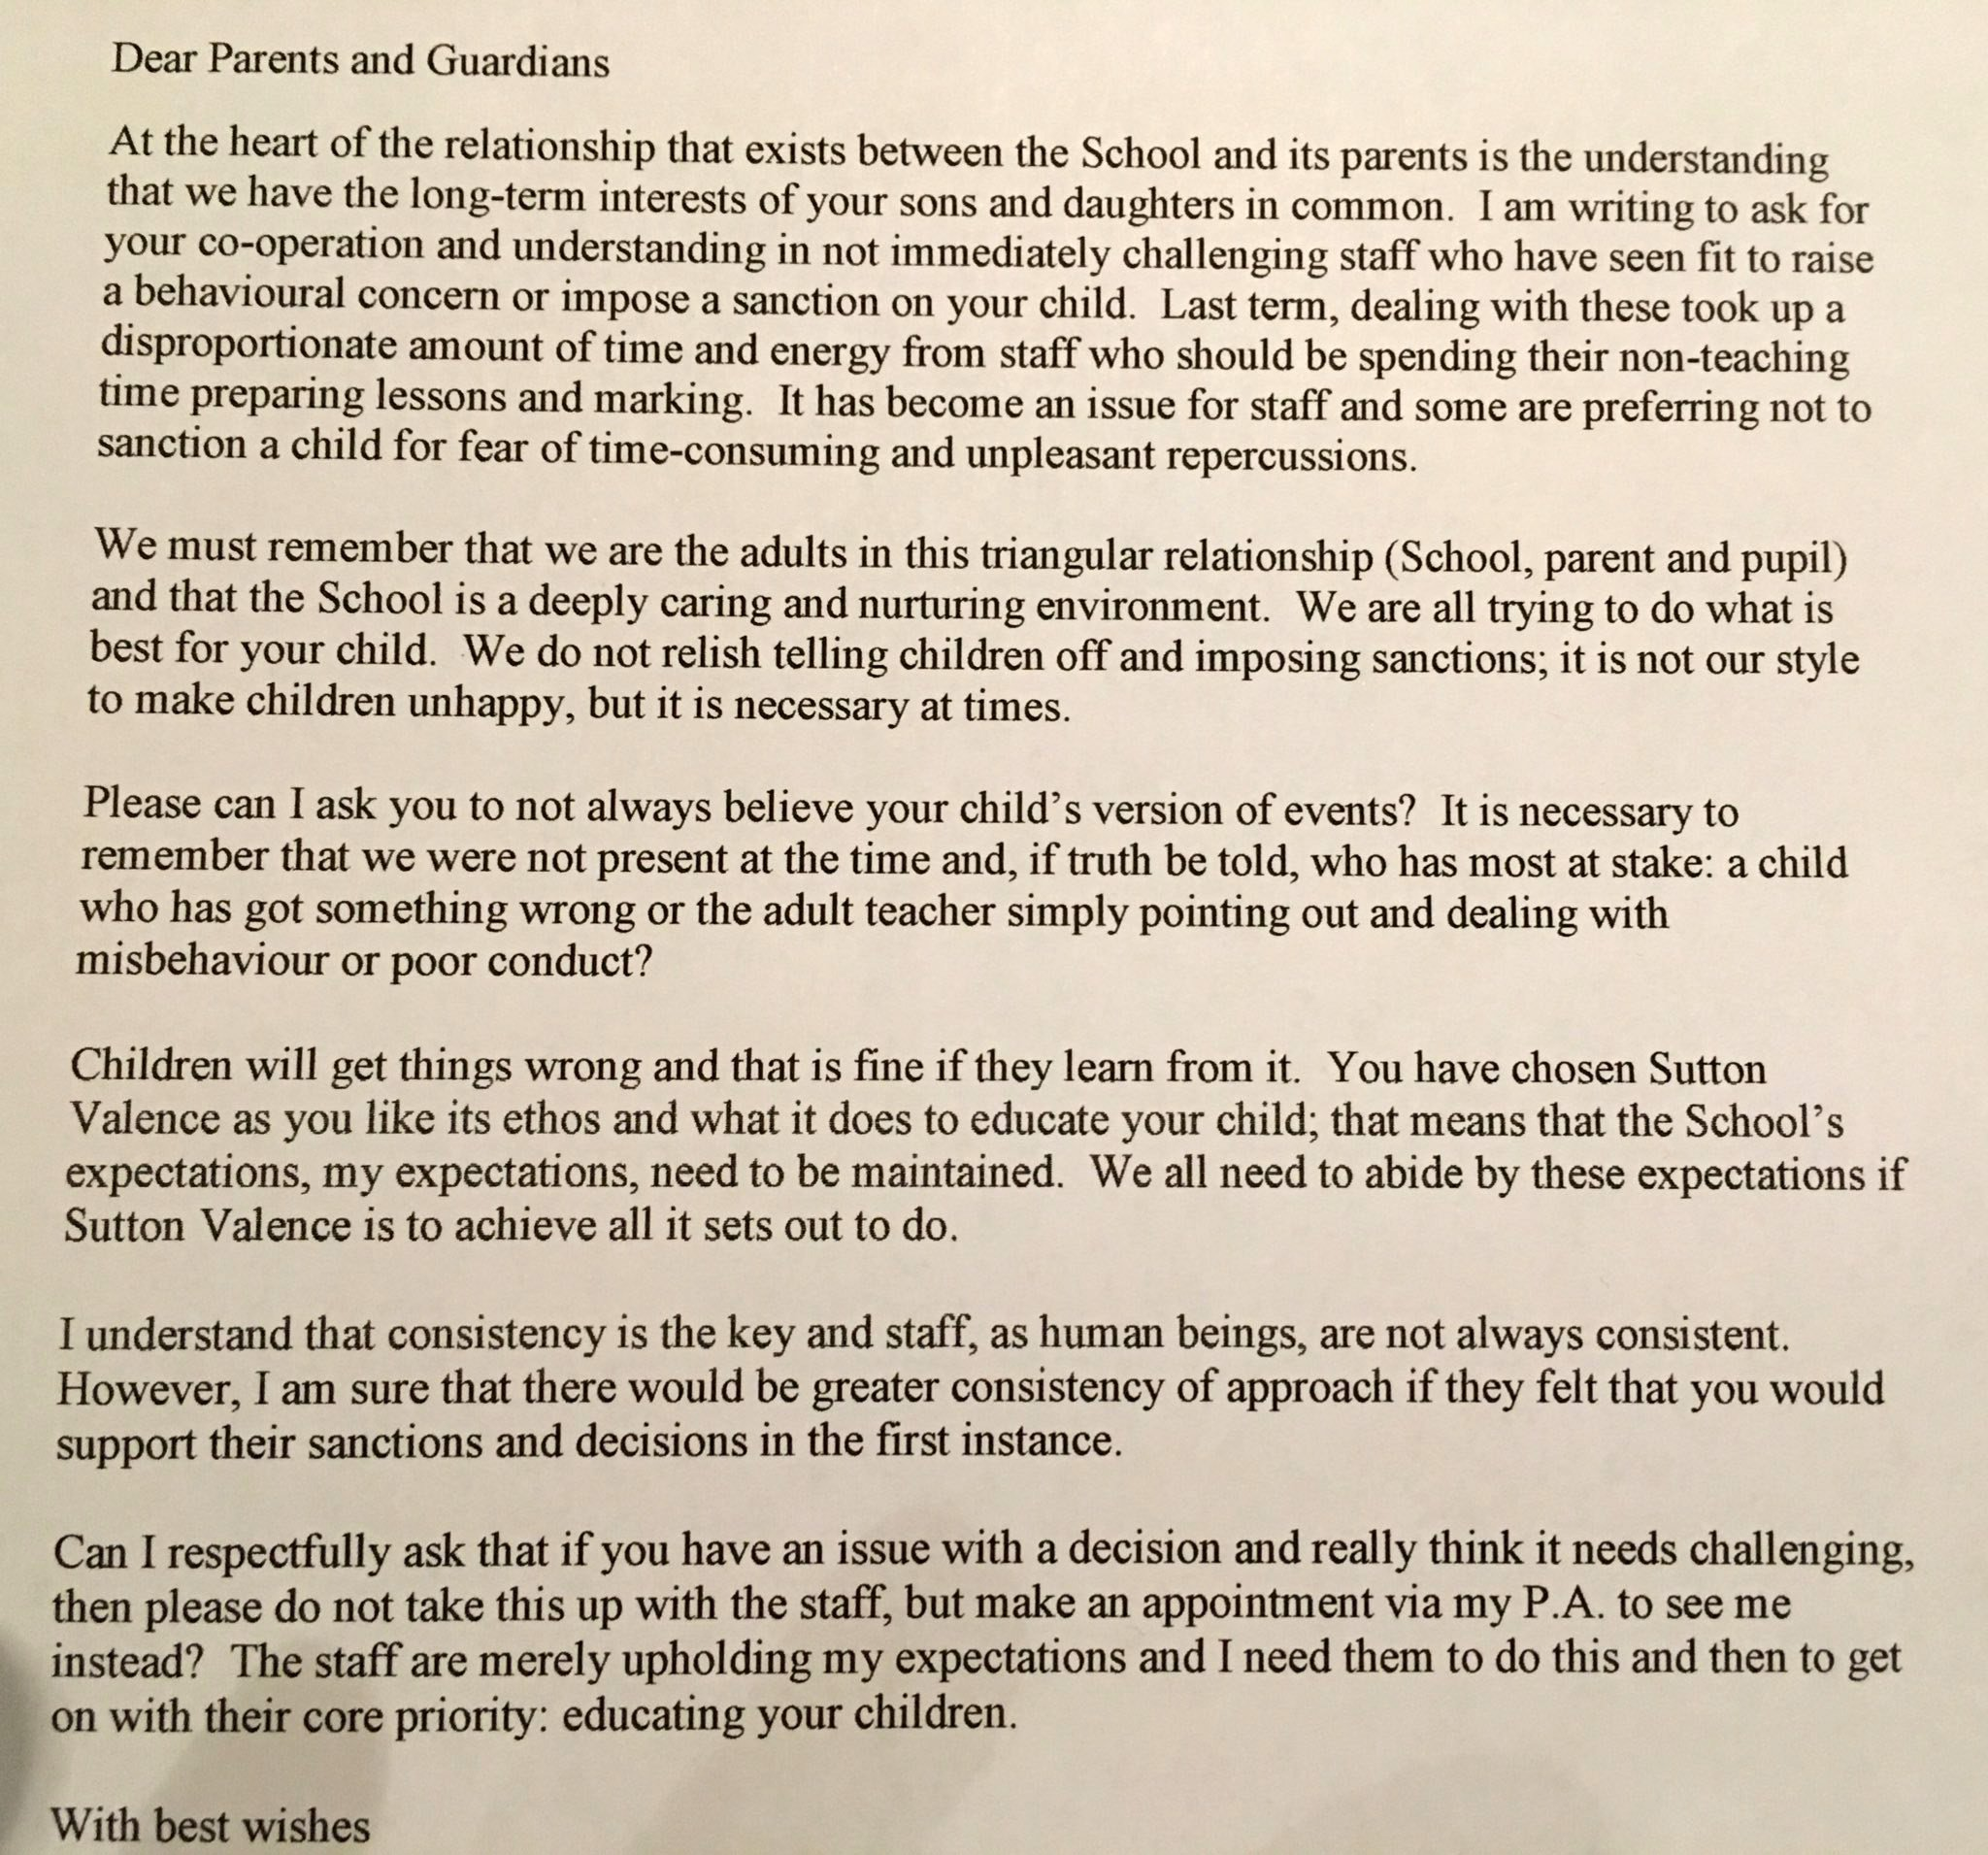 Letter to parents Sutton Valence School near Maidstone, Kent (Picture: @CREducATE)